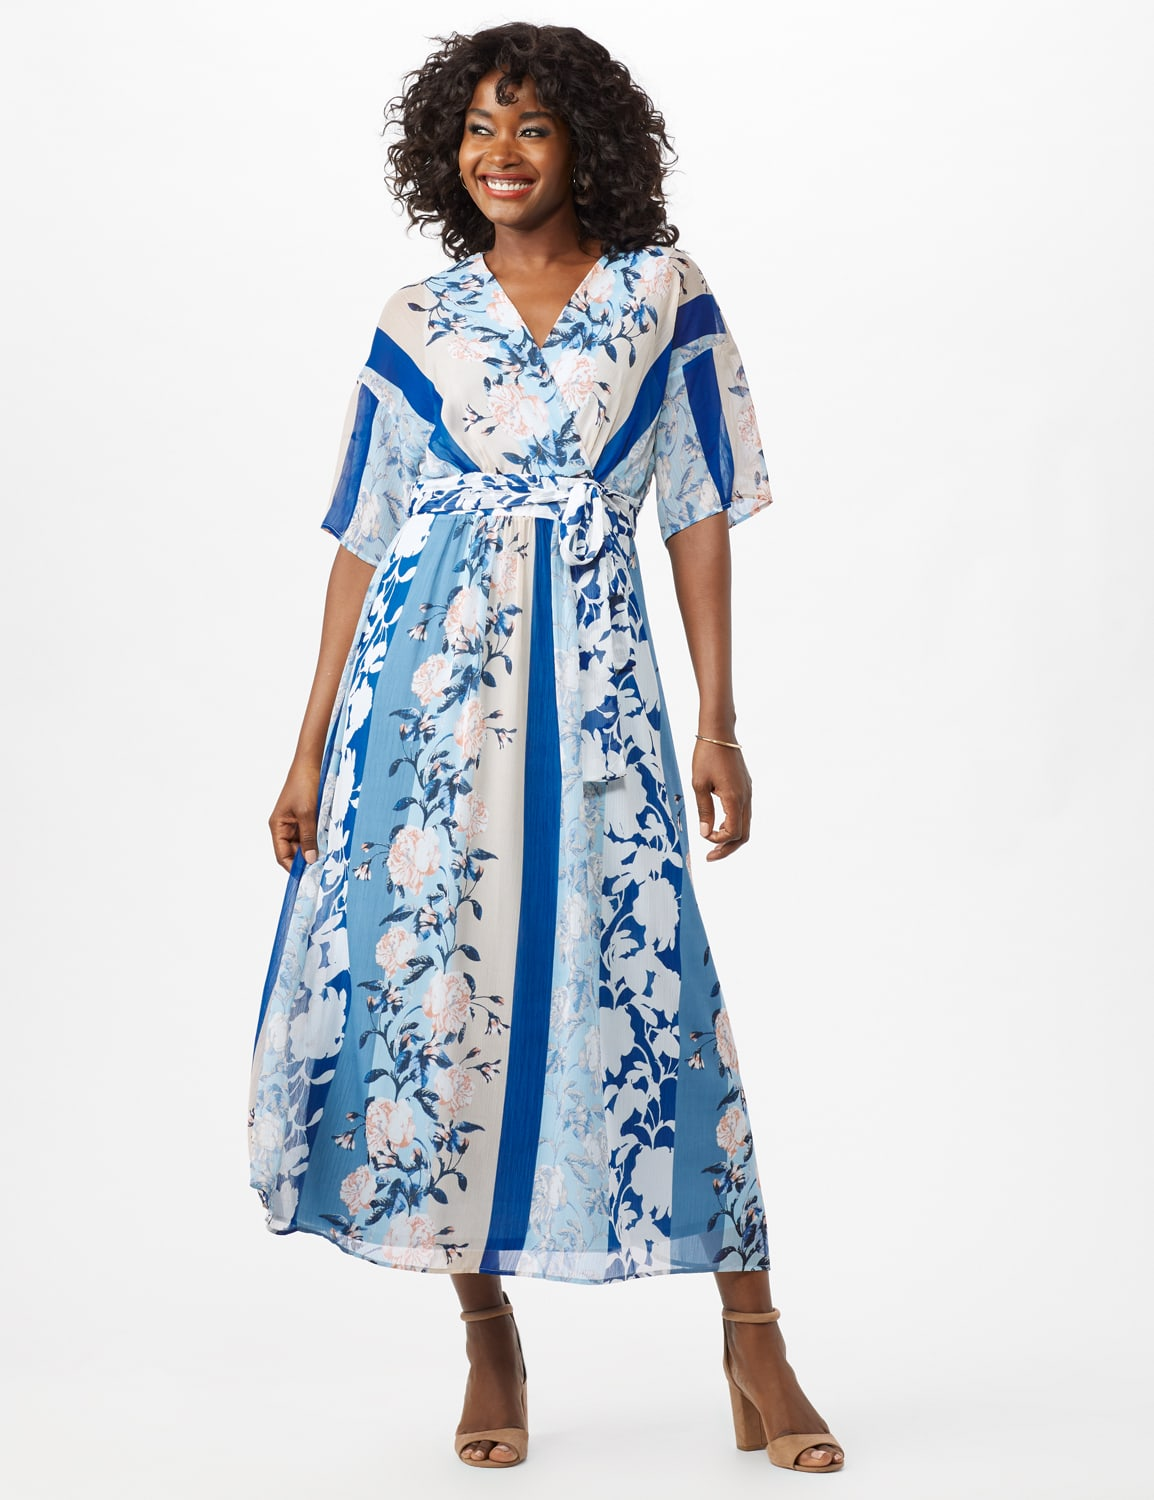 Floral Stripe Patio Dress - Sky Blue/Multi - Front